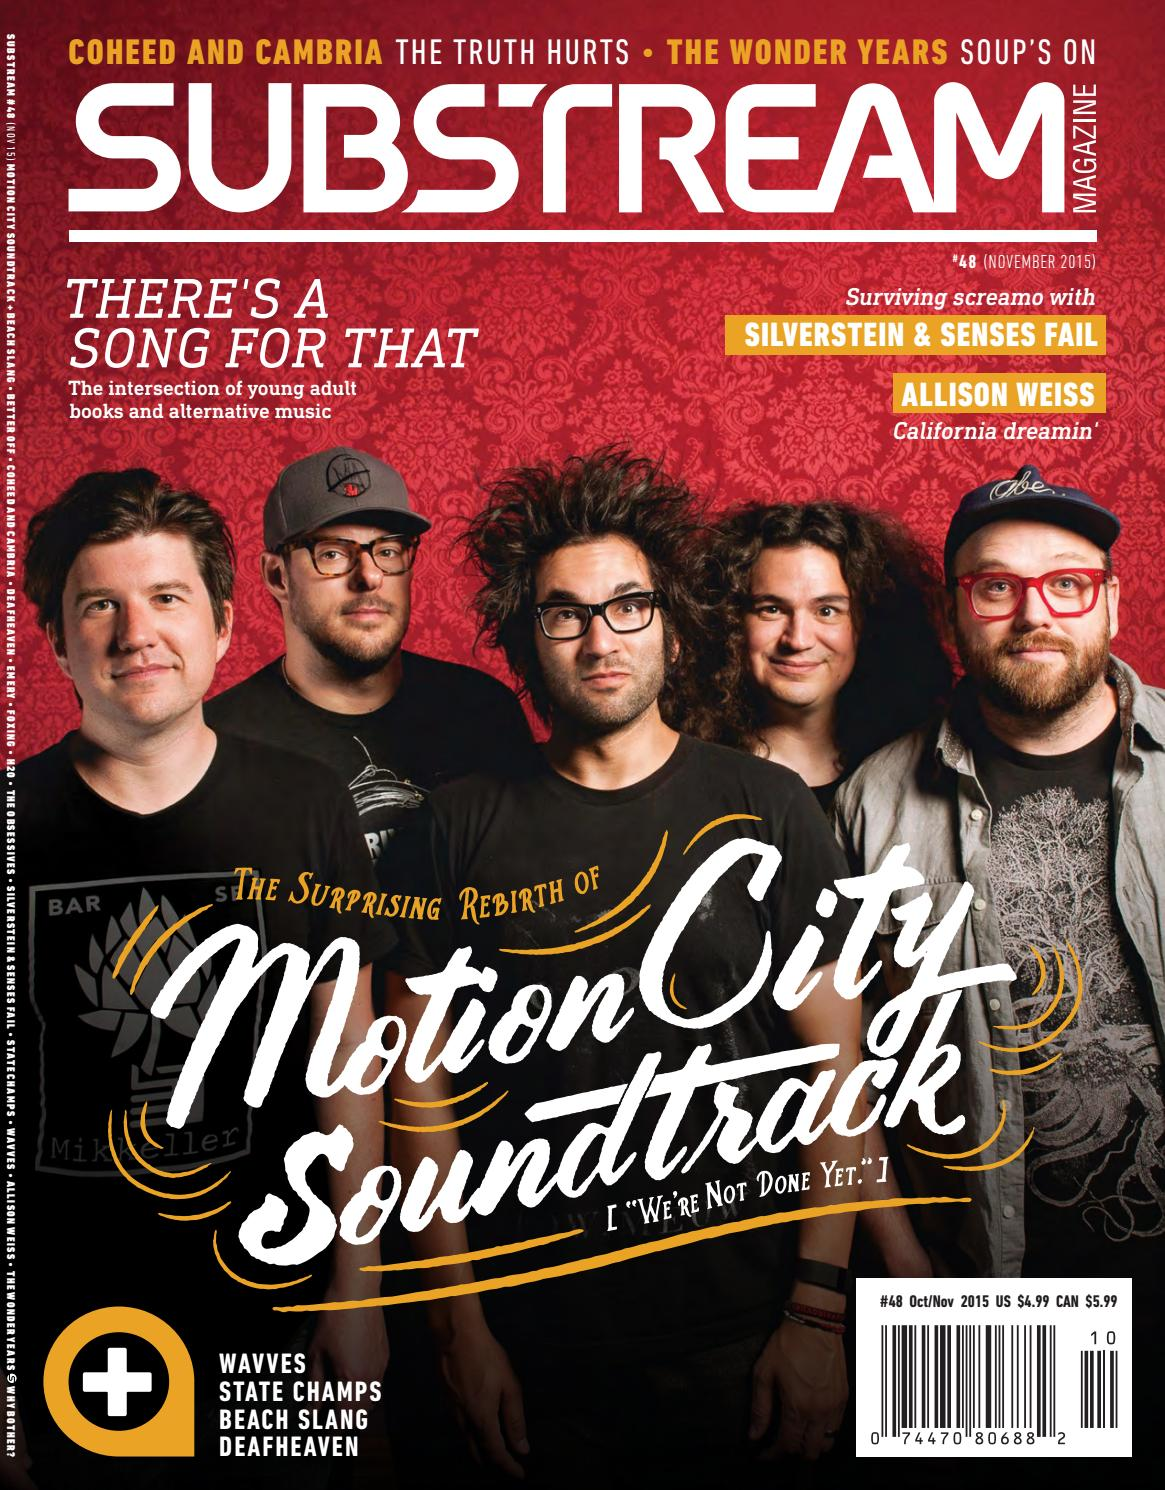 Substream Magazine Issue 48 Featuring Motion City Soundtrack By